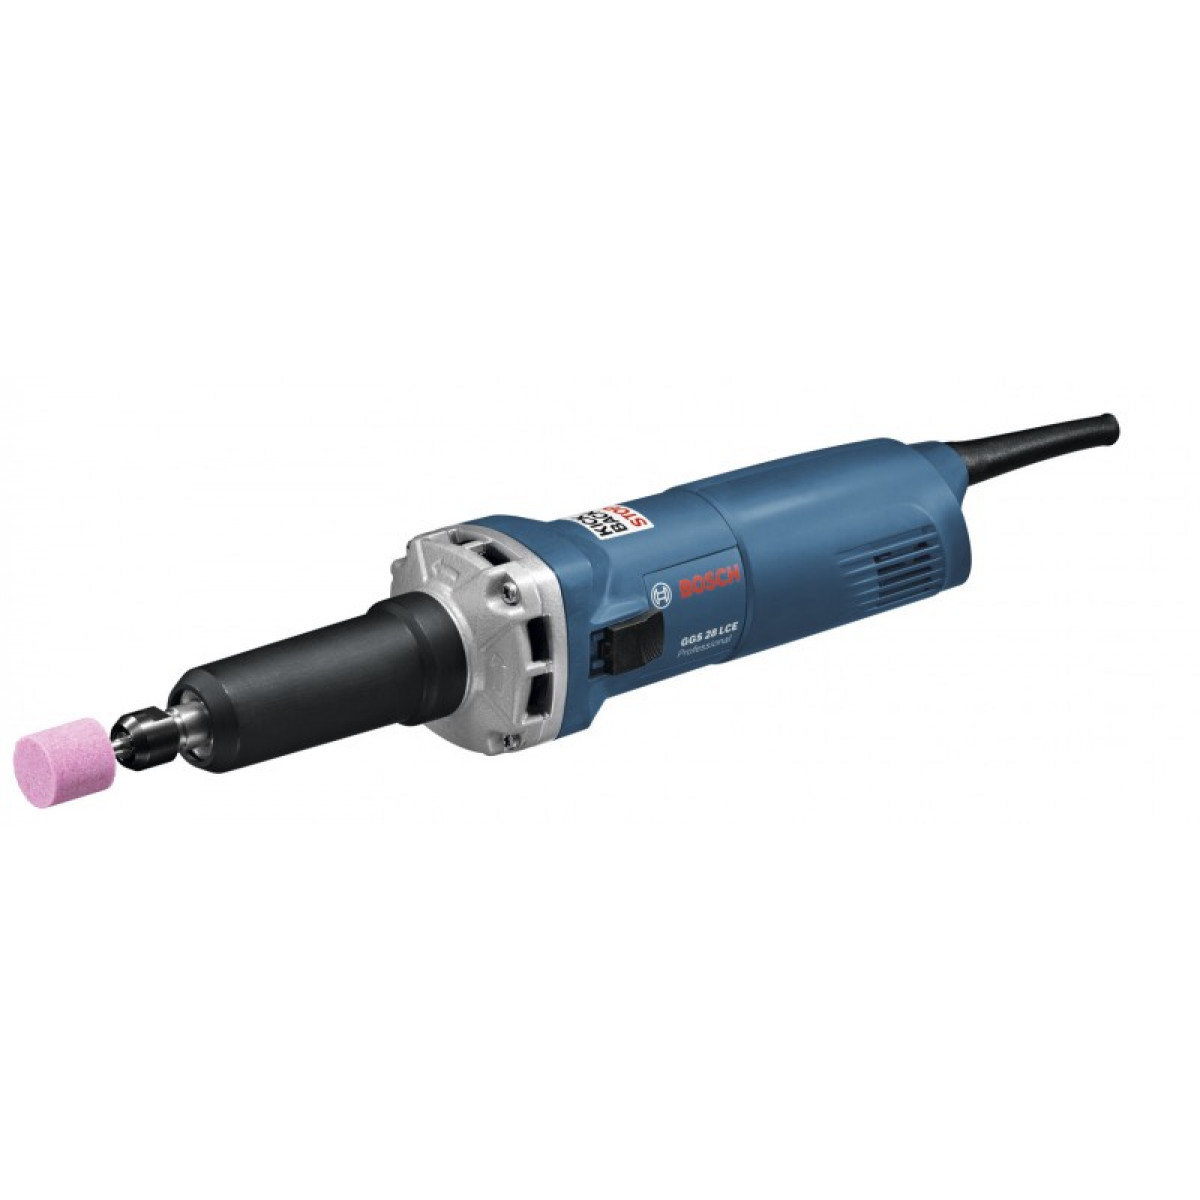 RECTIFICADOR BOSCH GGS 28 LCE 650W 28000RPM